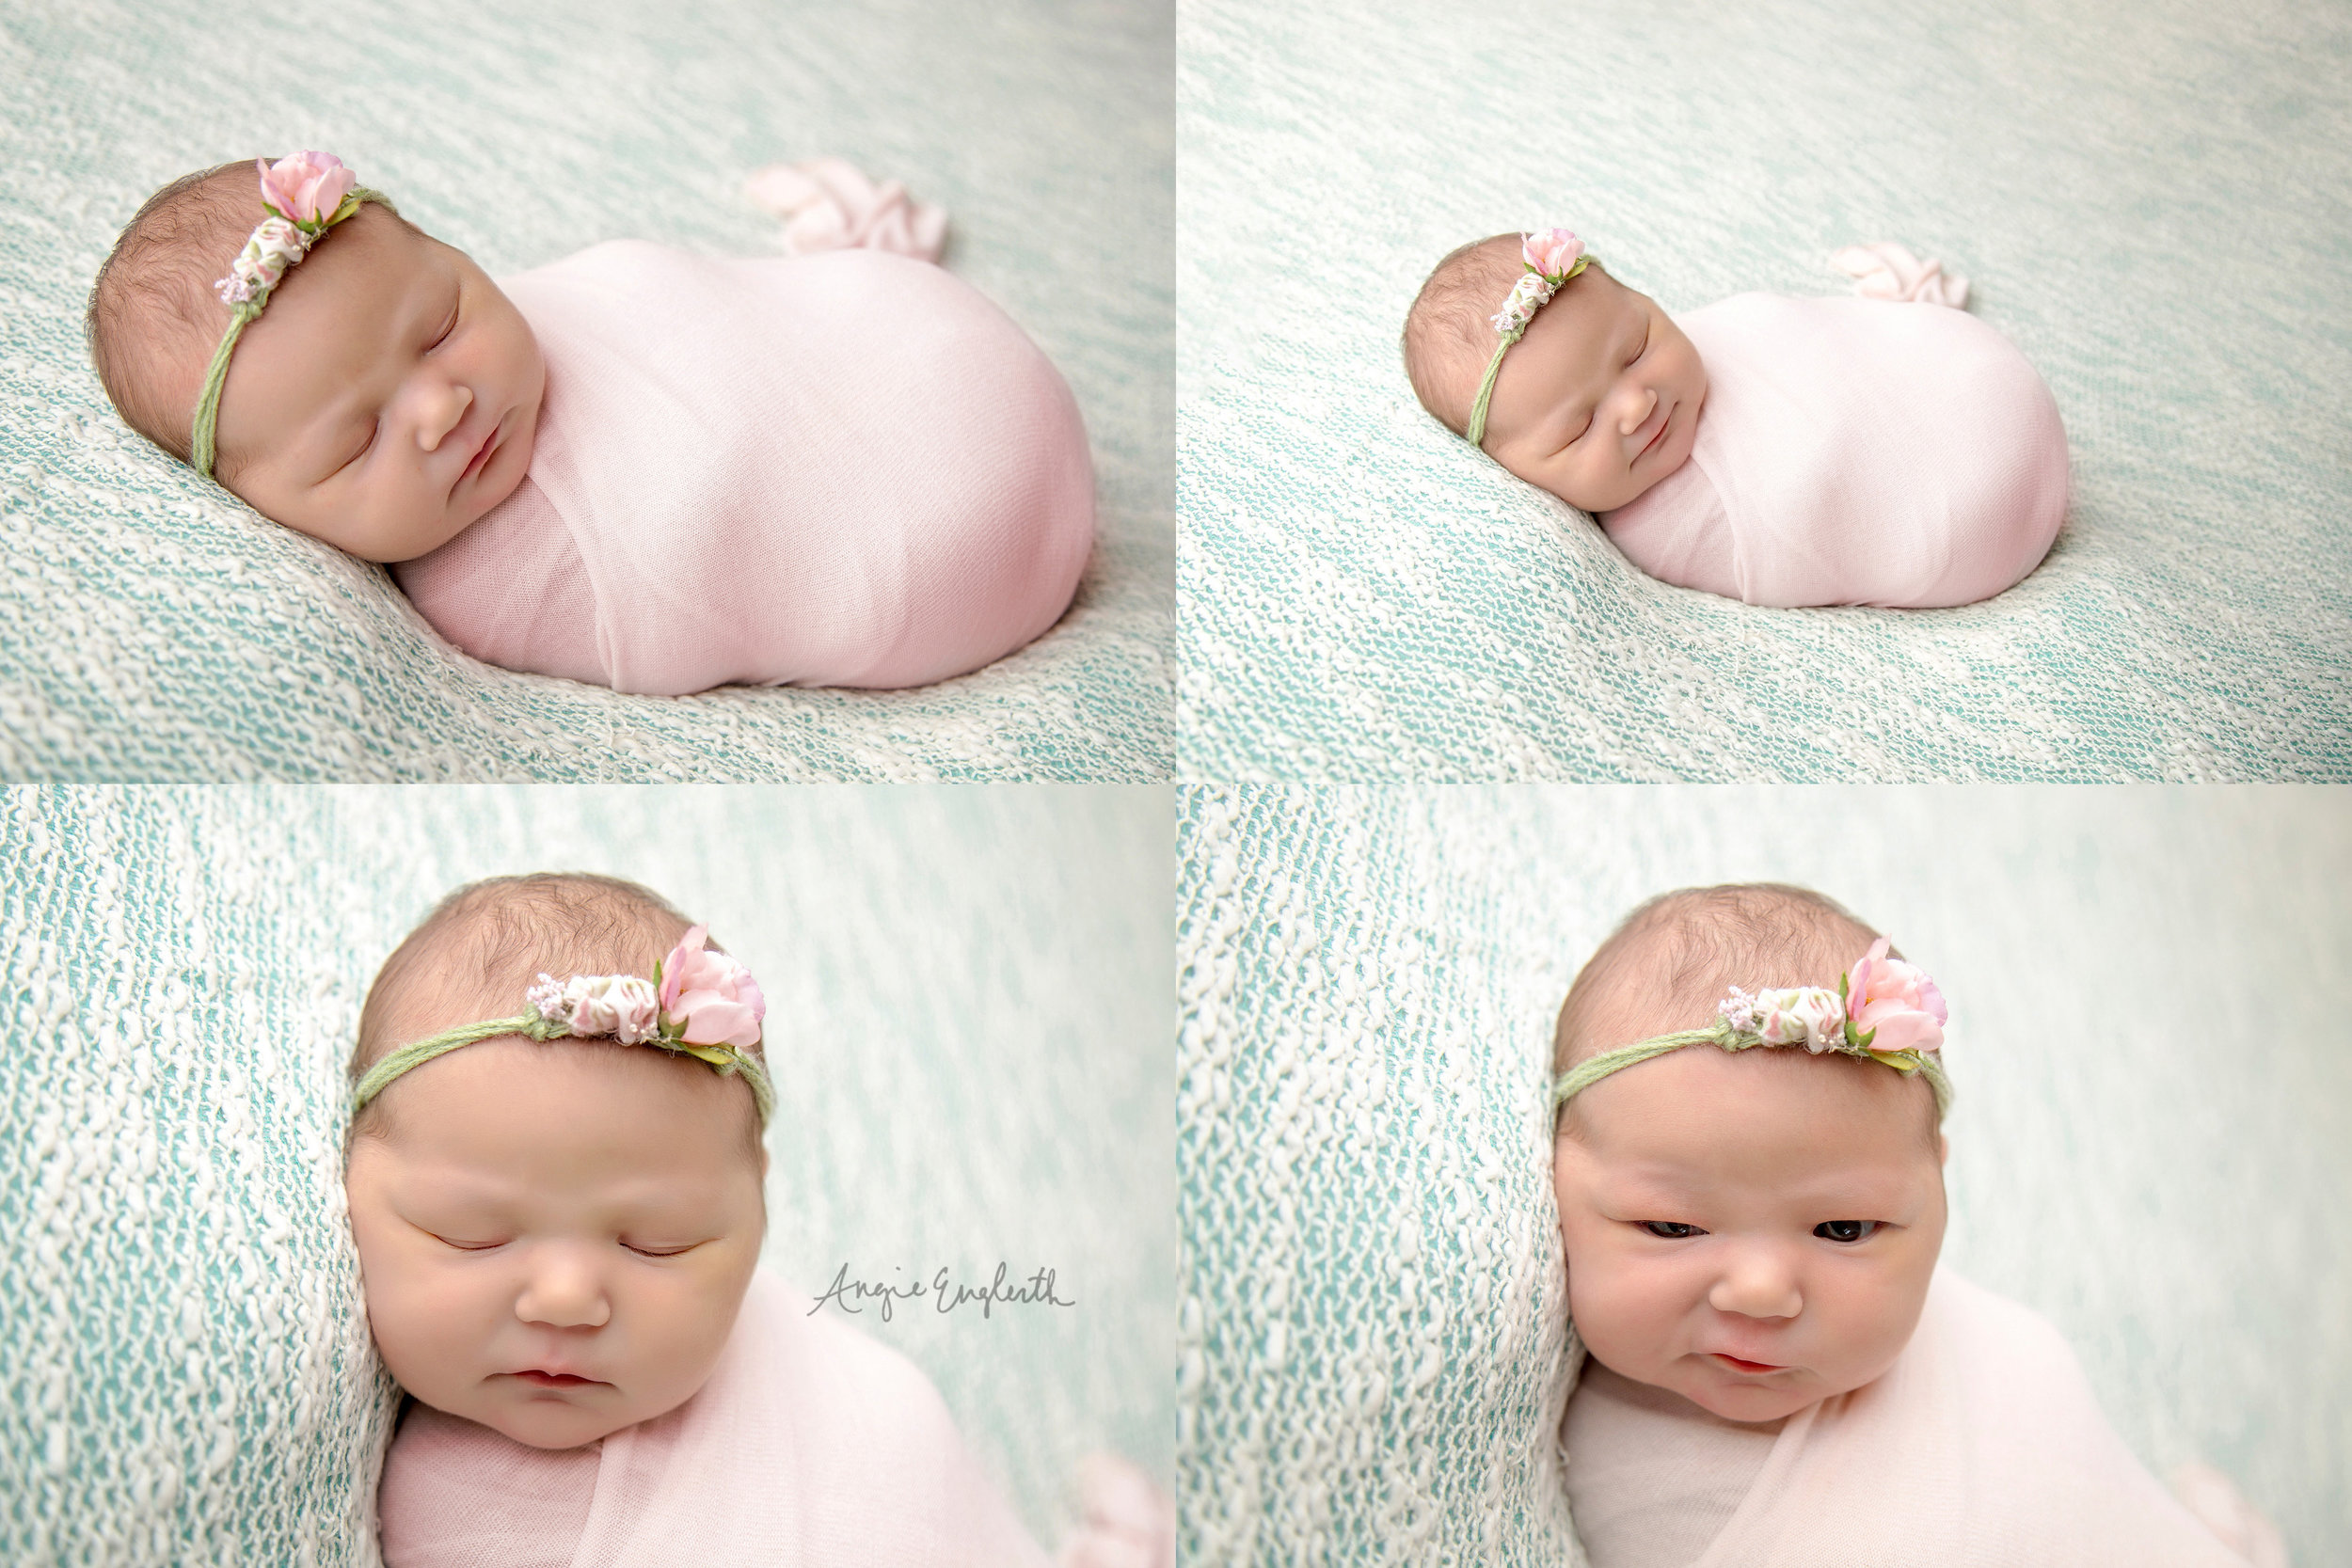 lancaster_newborn_photographer_angie_englerth_central_pa_002.jpg